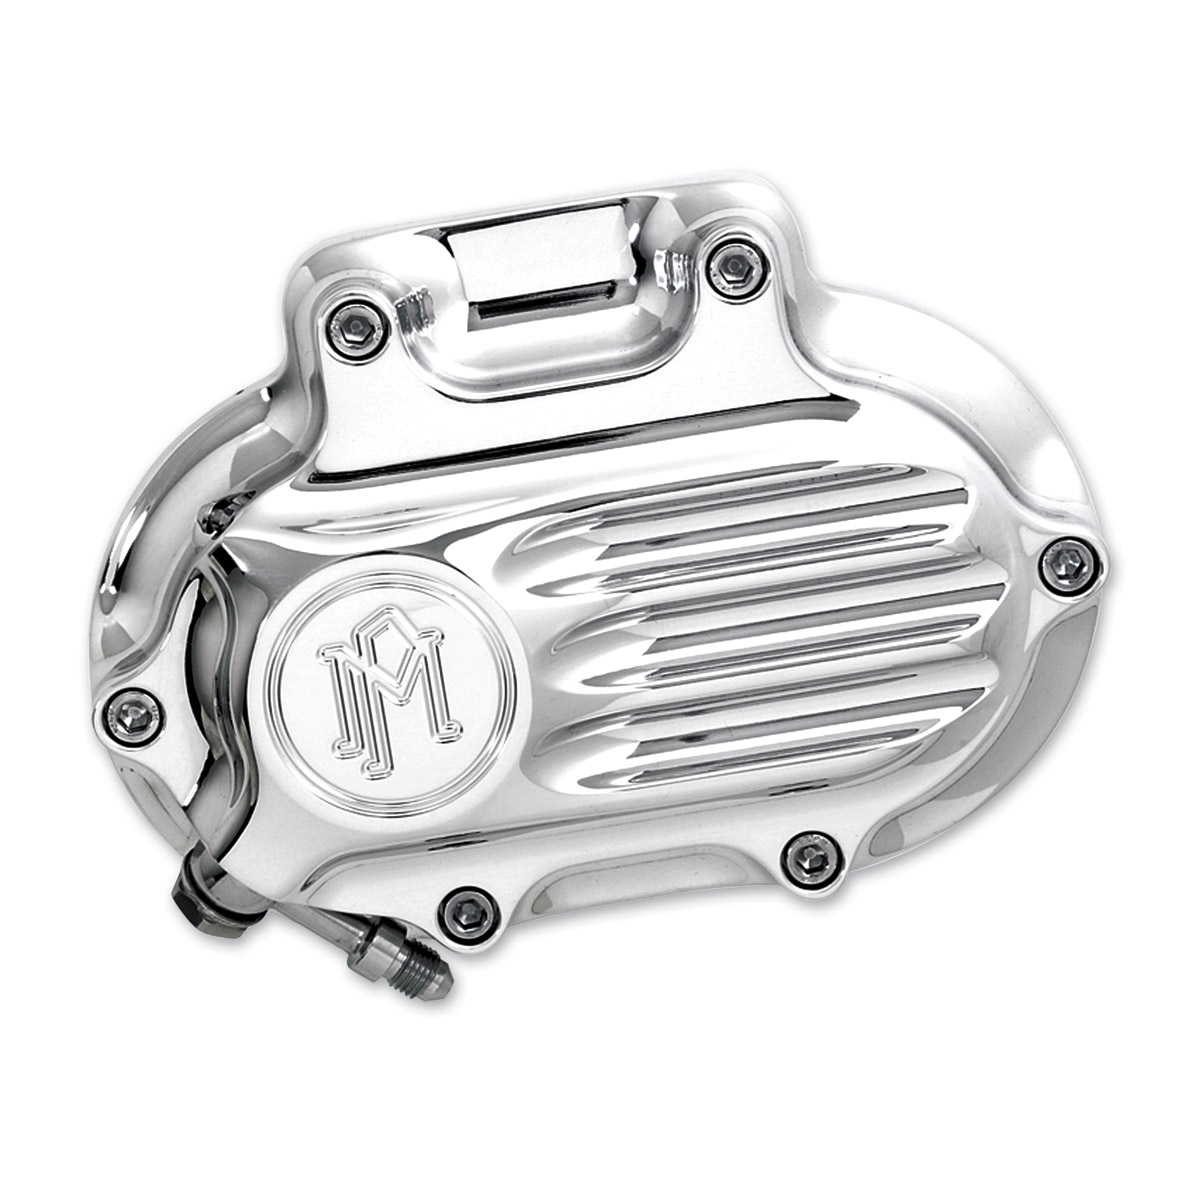 Performance Machine Fluted Hydraulic Clutch Release Cover Contrast Cut